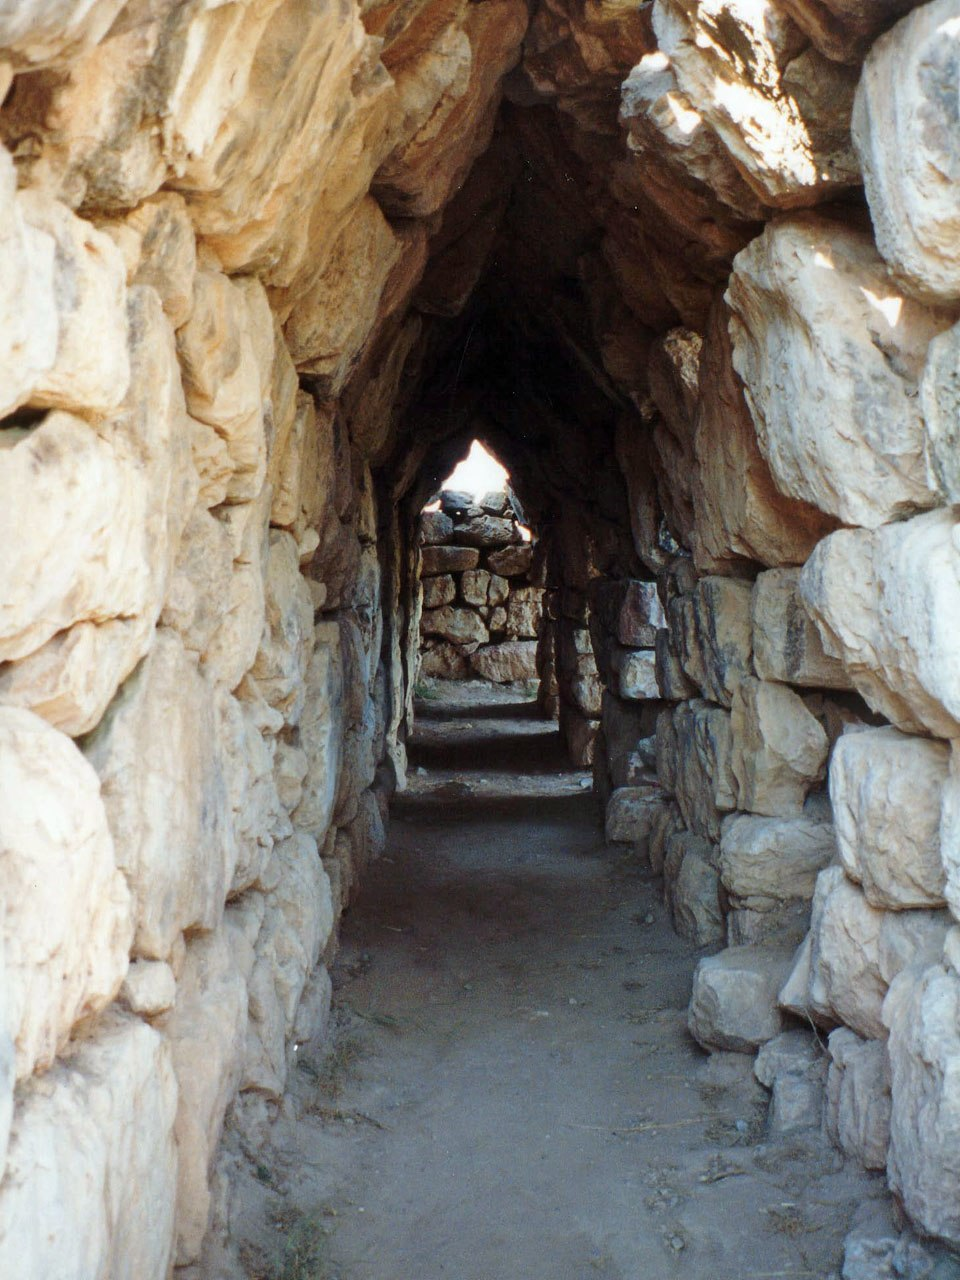 Passageway of the galleries within the walls of Tiryns